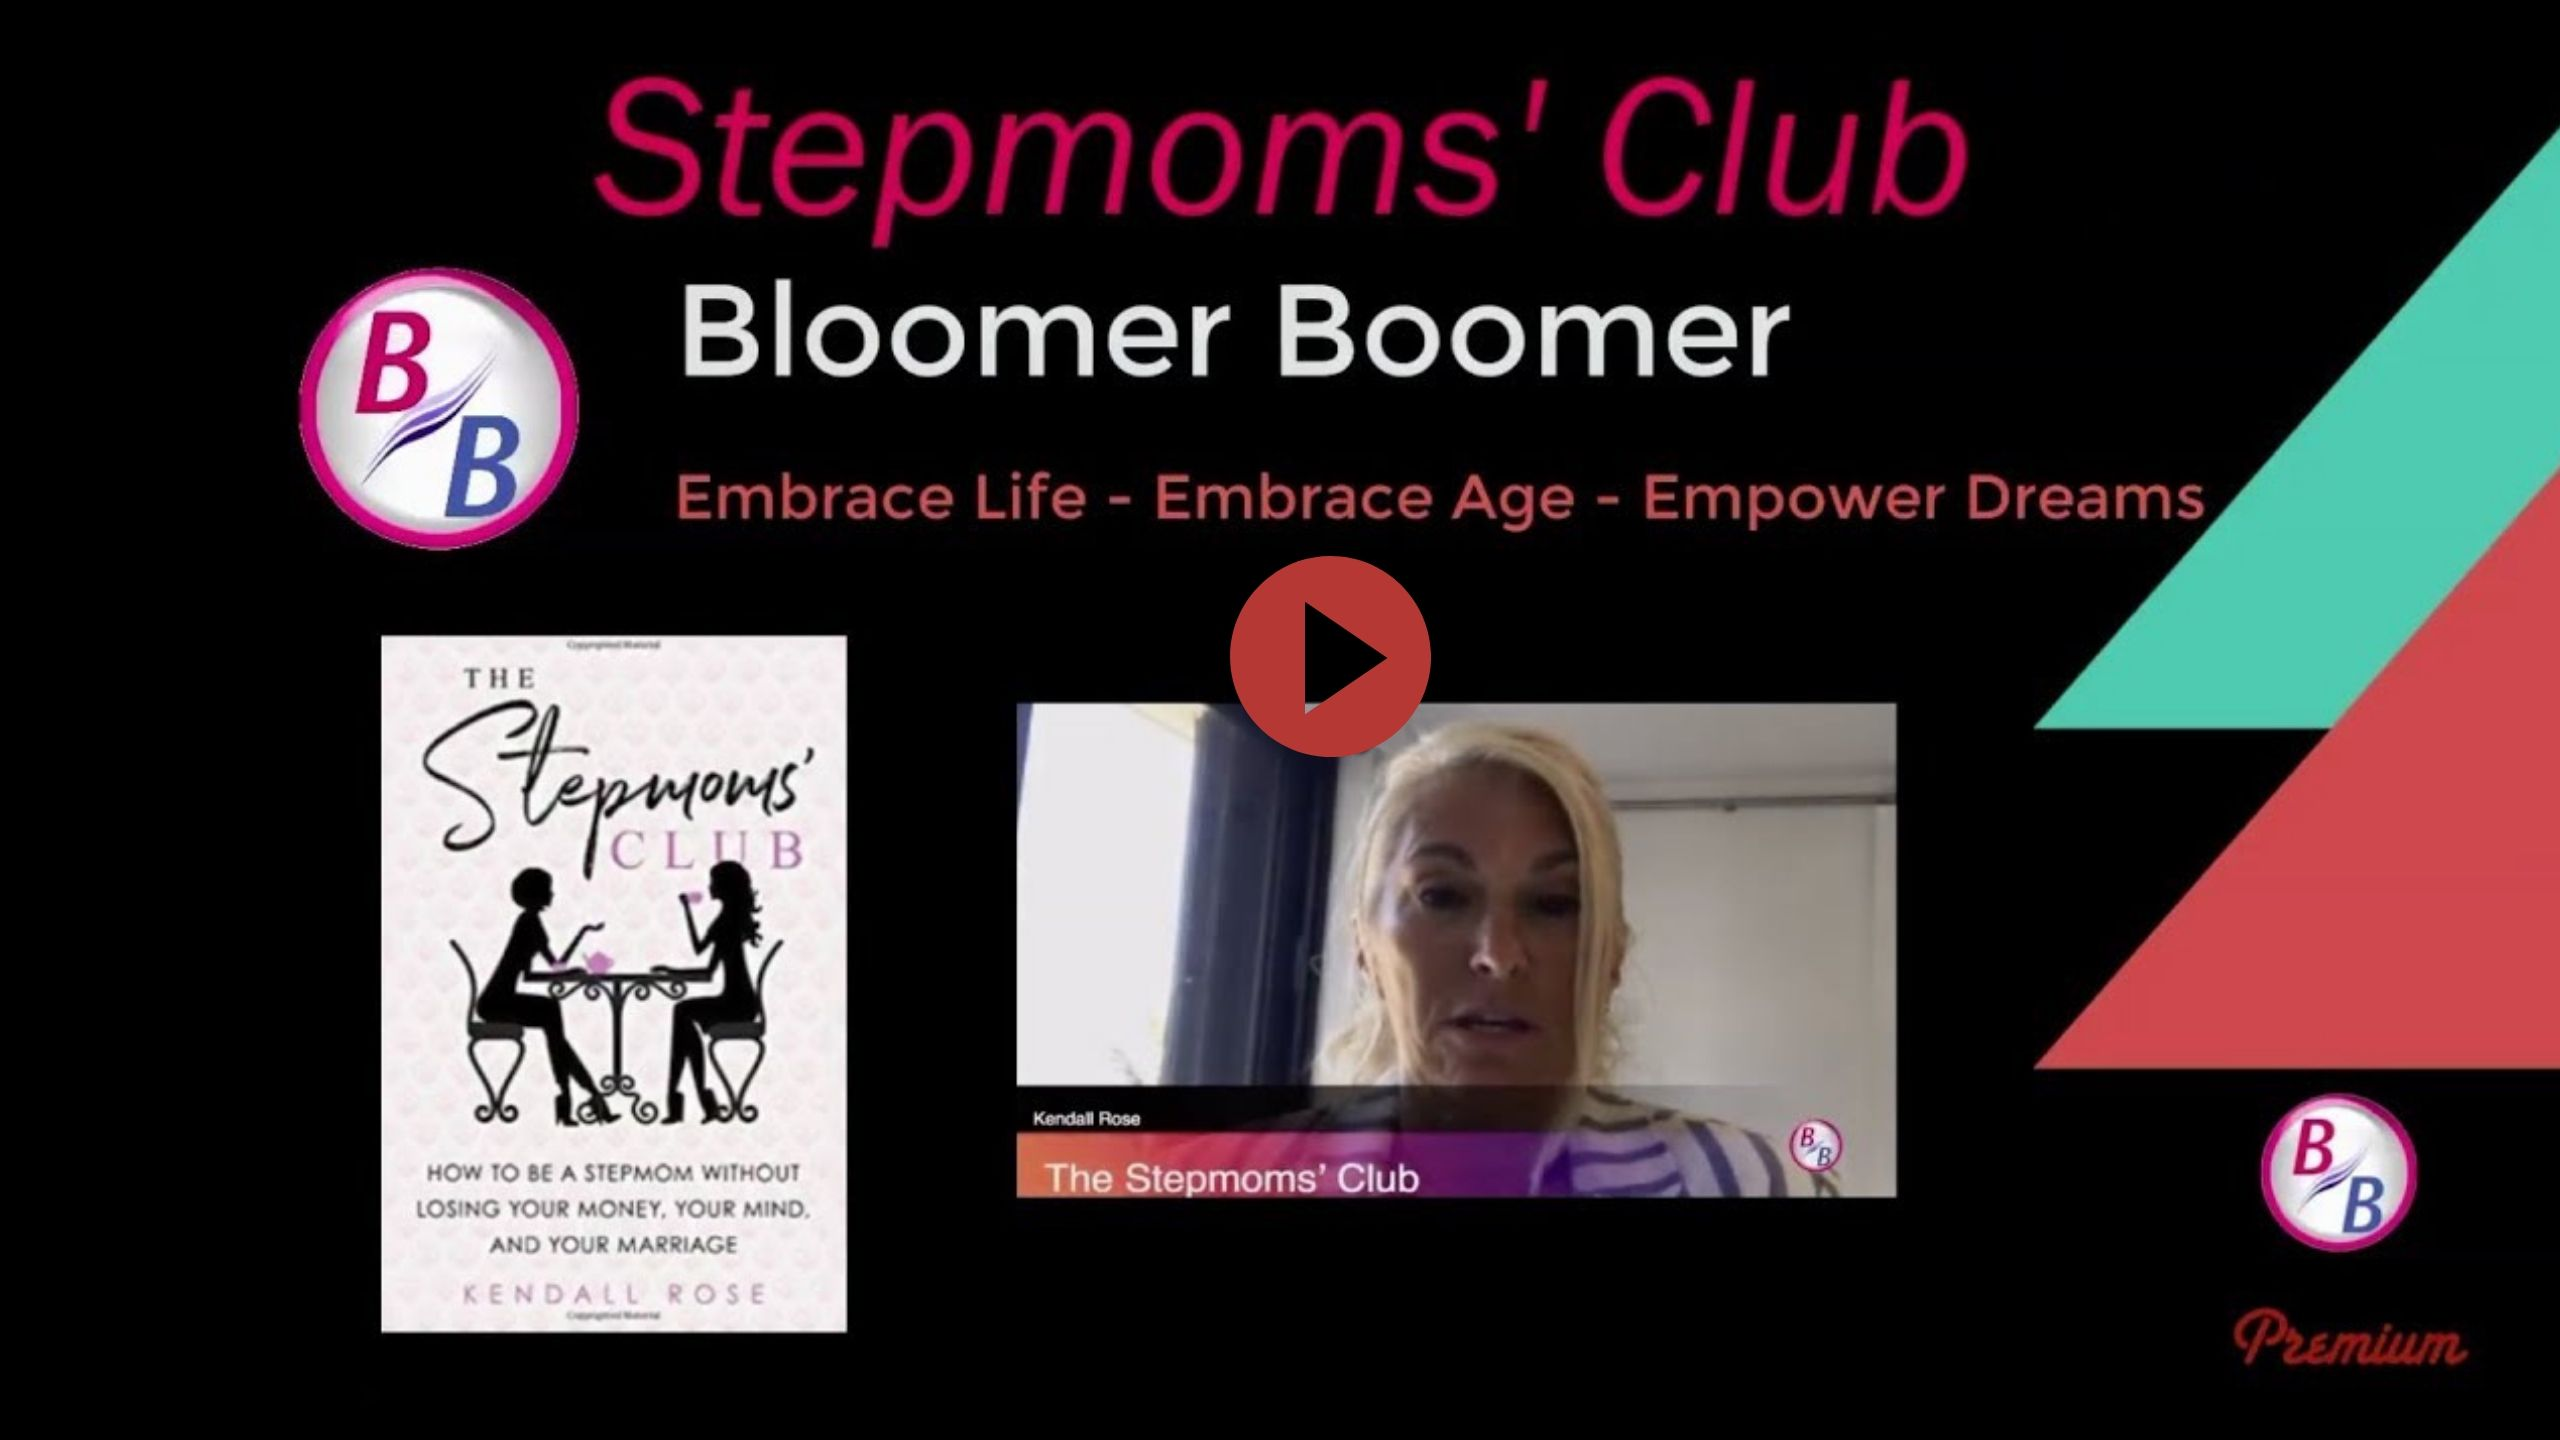 Stepmoms' Club